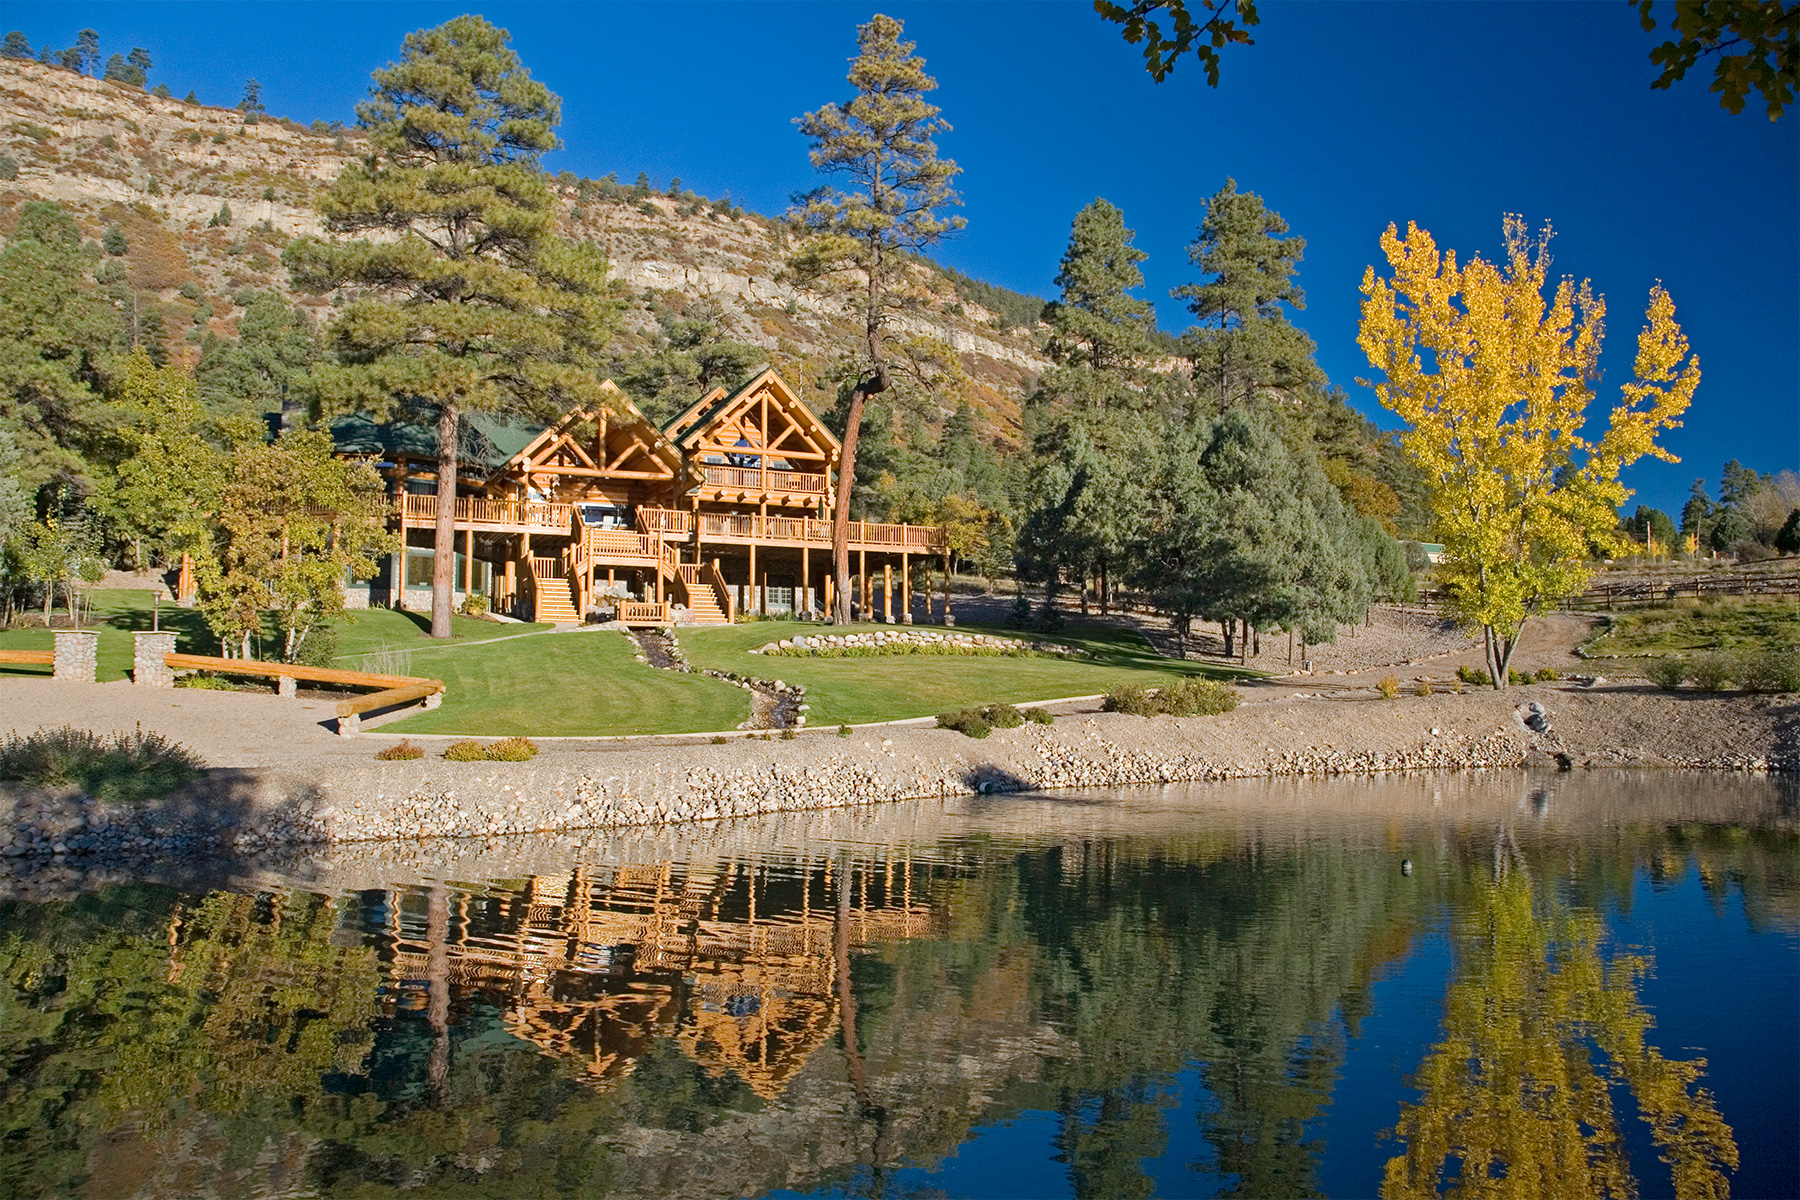 Single Family Home for Sale at 125 White Water Drive Durango, Colorado 81301 United States